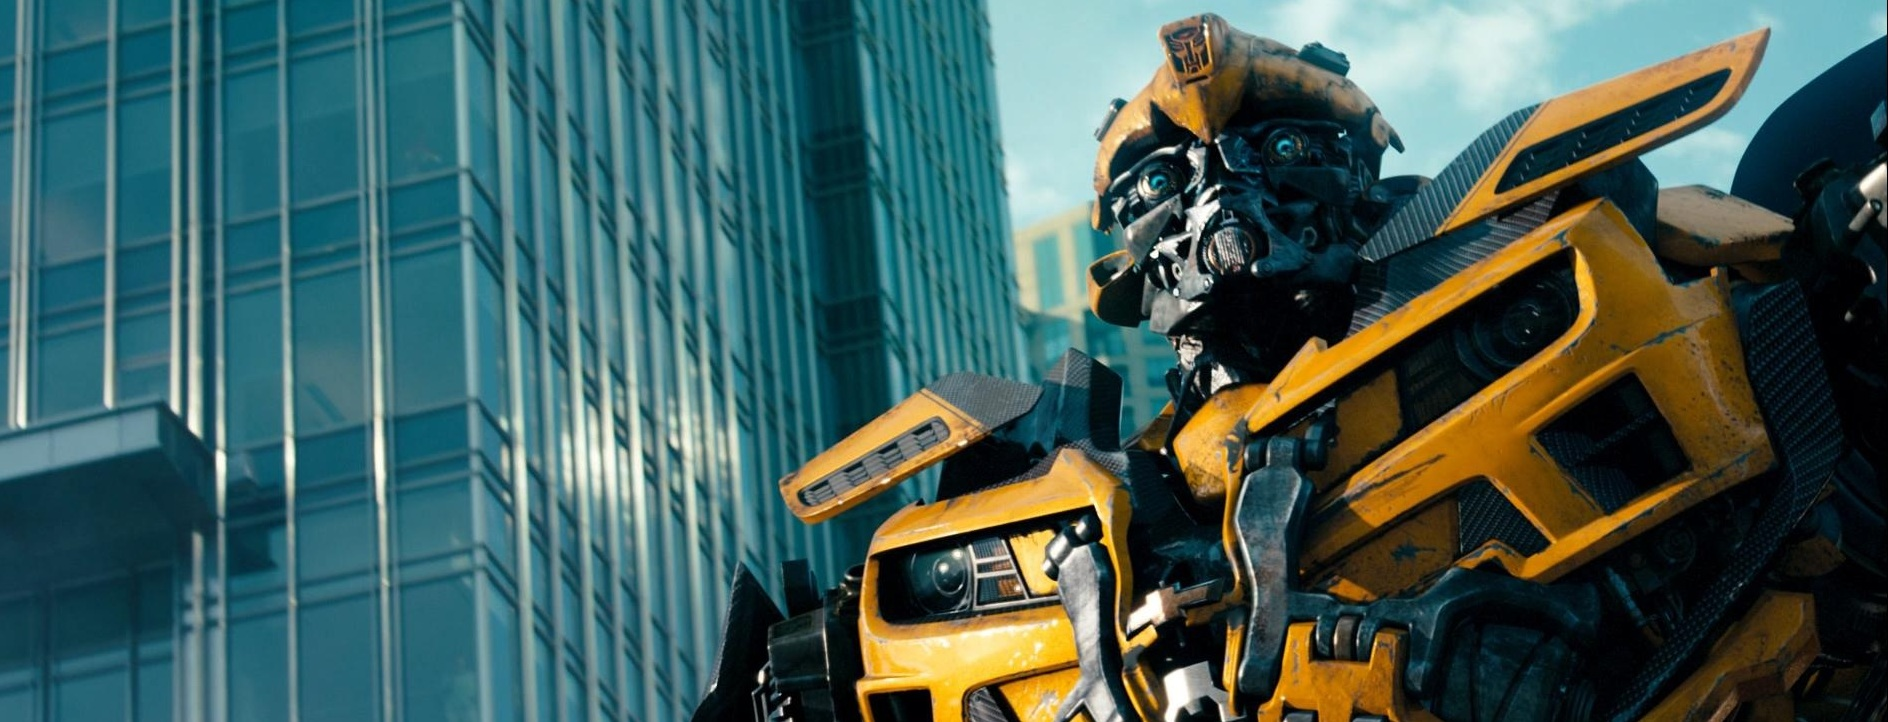 Bumblebee Transformers Dark Of The Moon Wiki Fandom Powered By Wikia